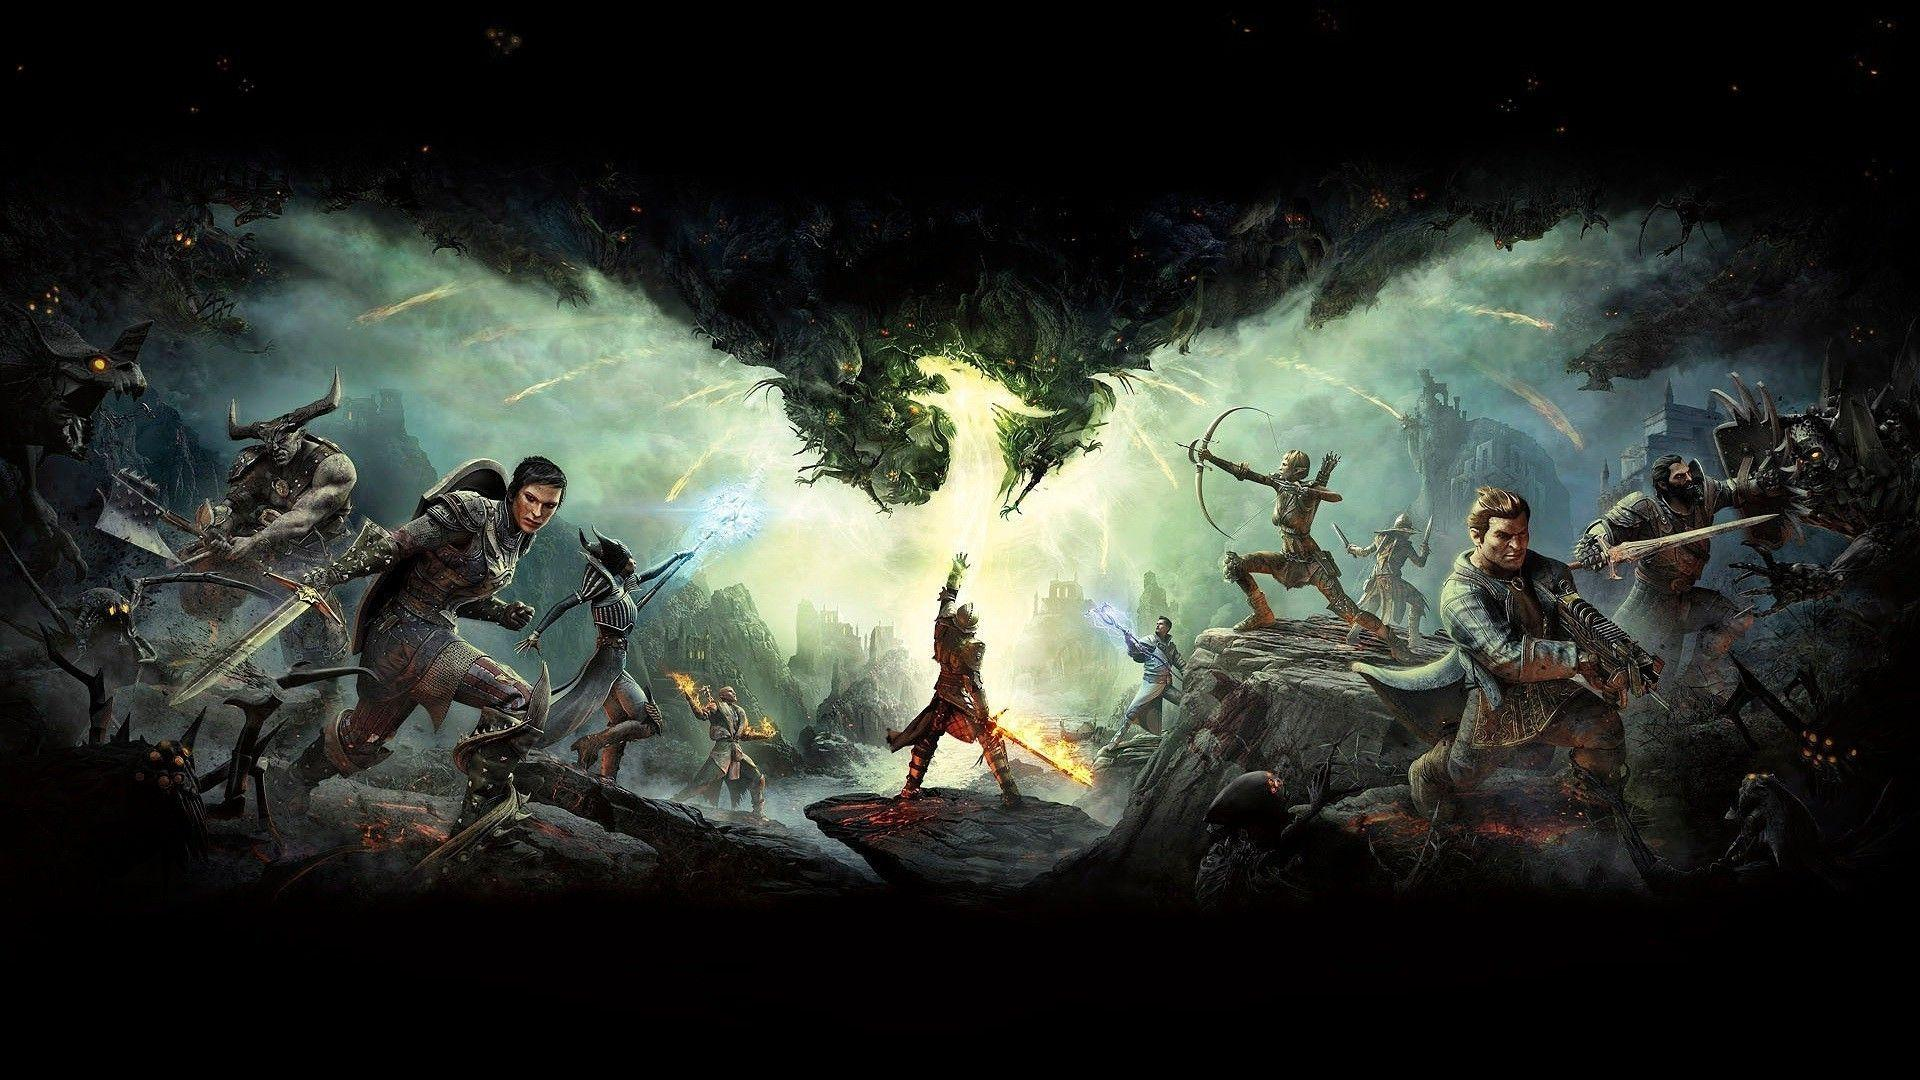 Dragon Age Inquisition Wallpapers 1920x1080 Wallpaper Cave